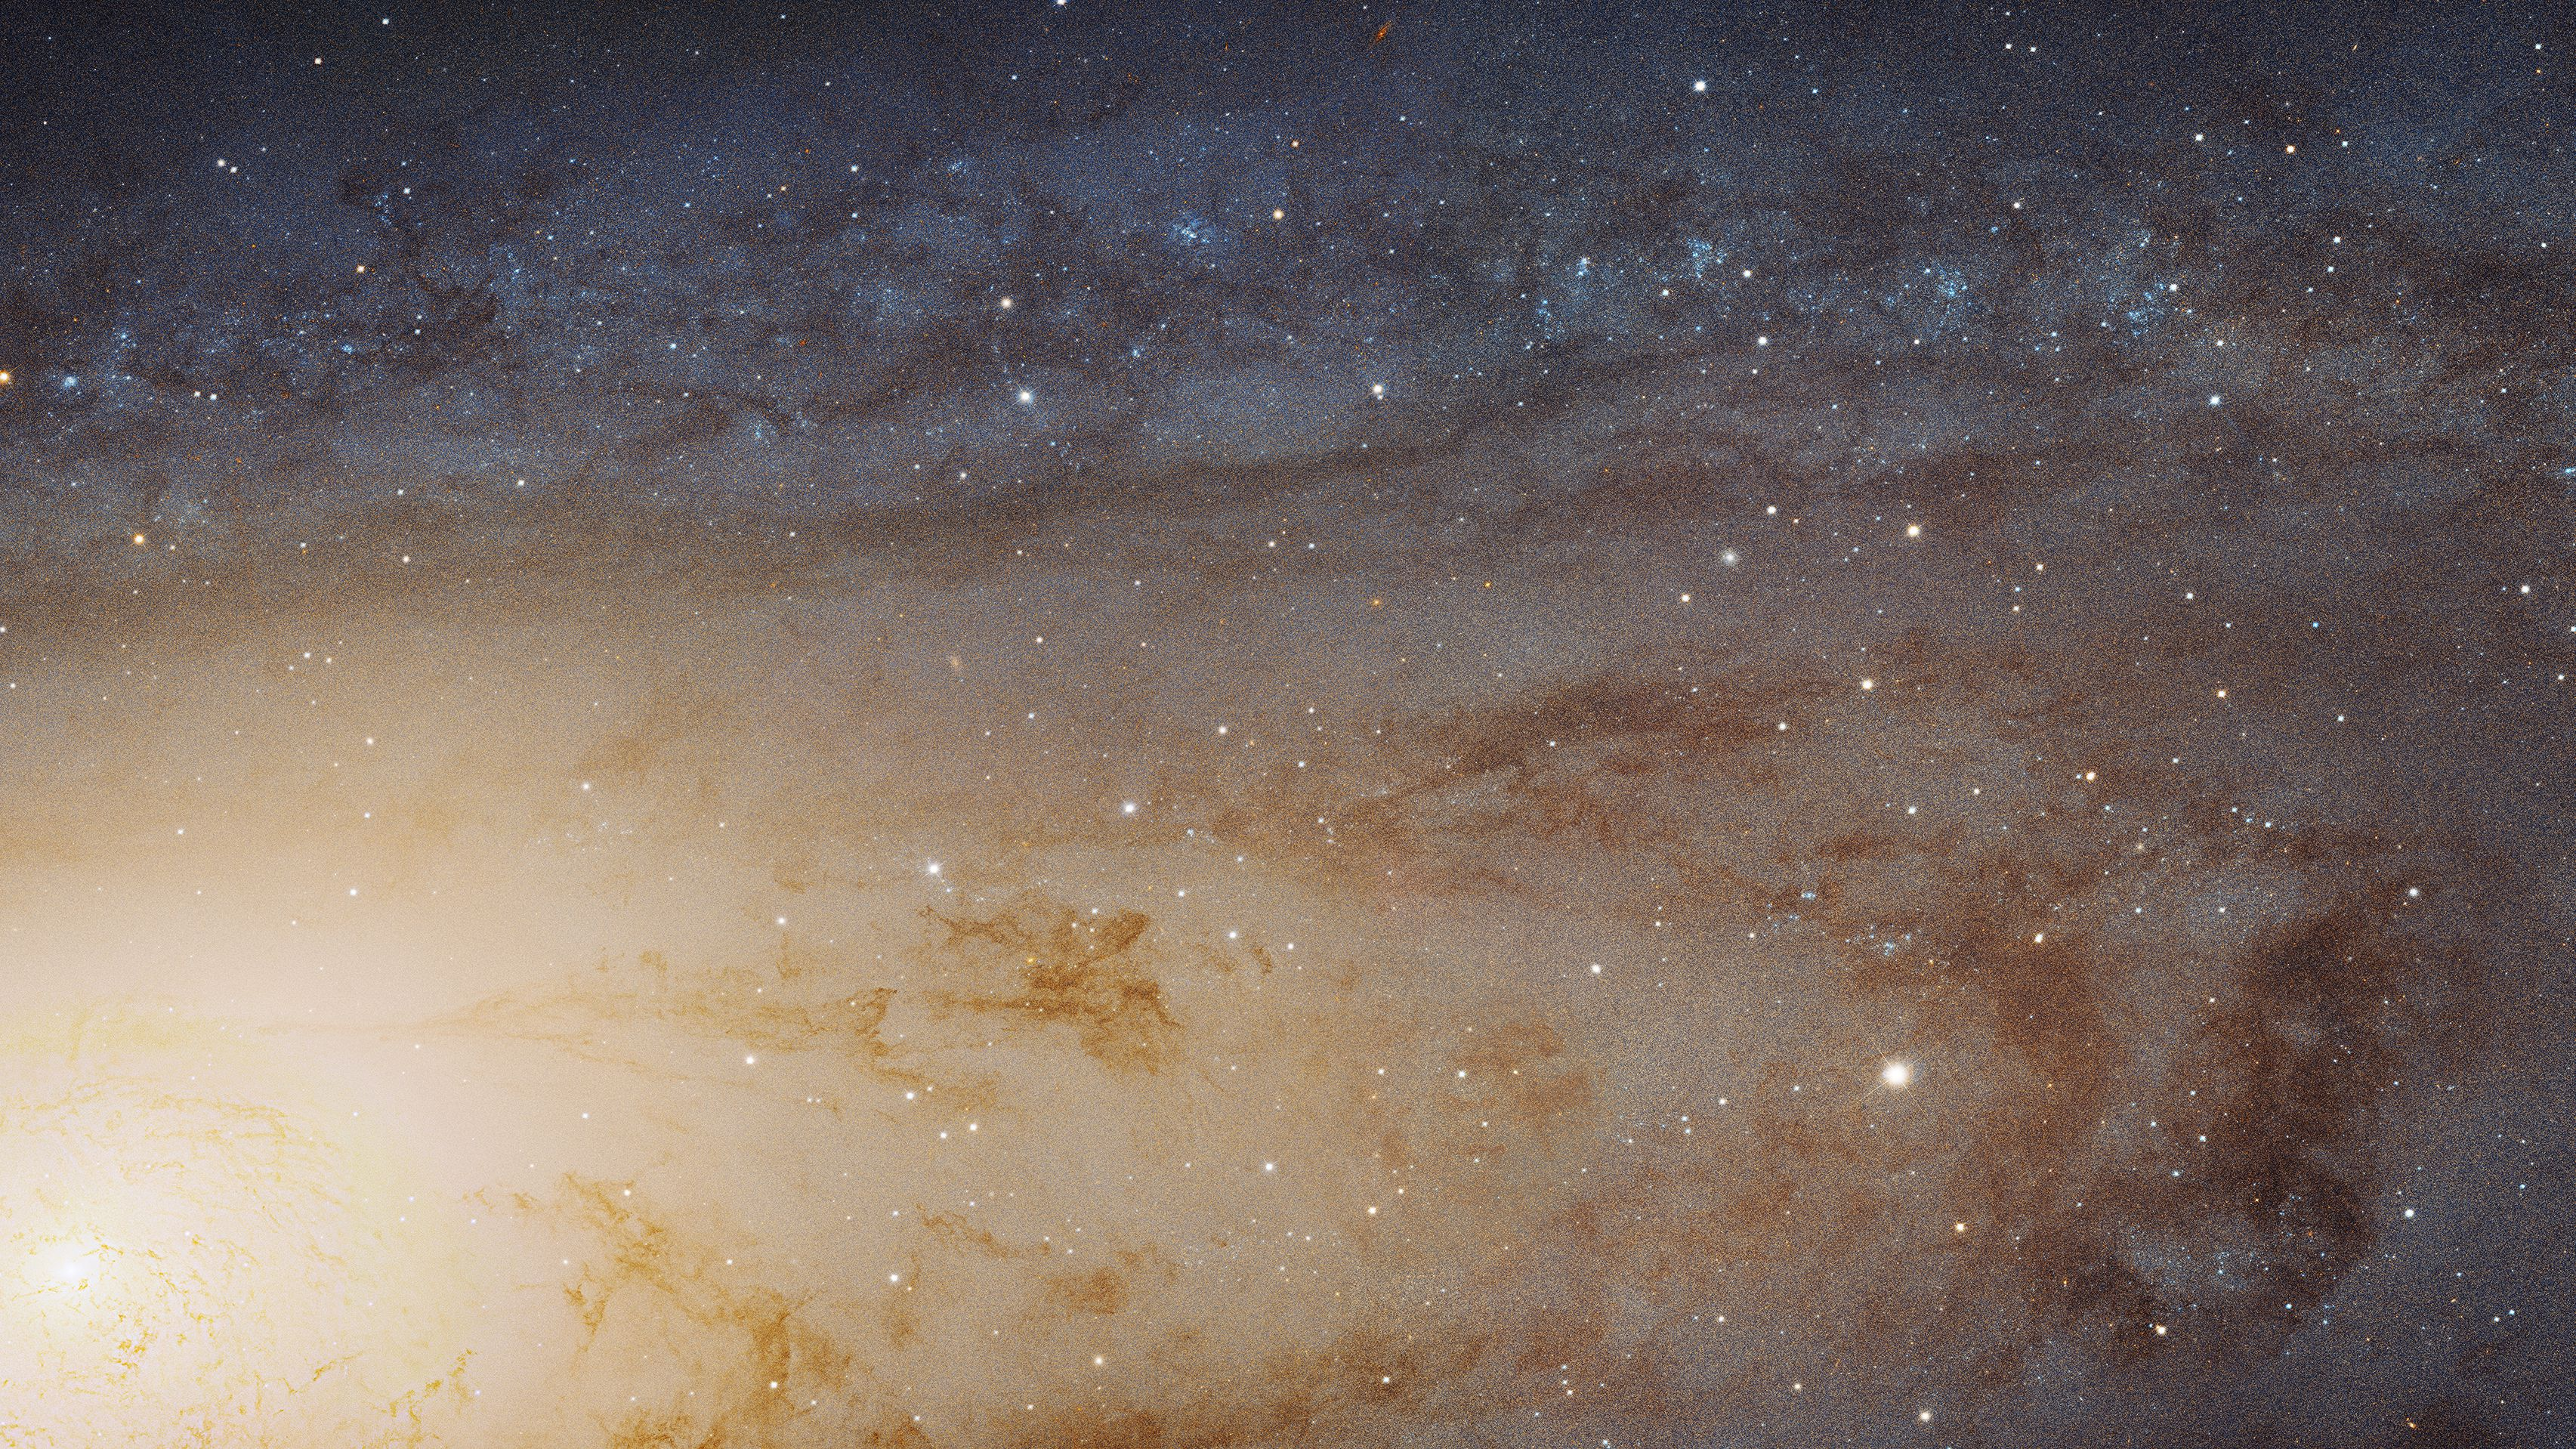 Cropped from full photo of Andromeda galaxy taken by the Hubble telescope.